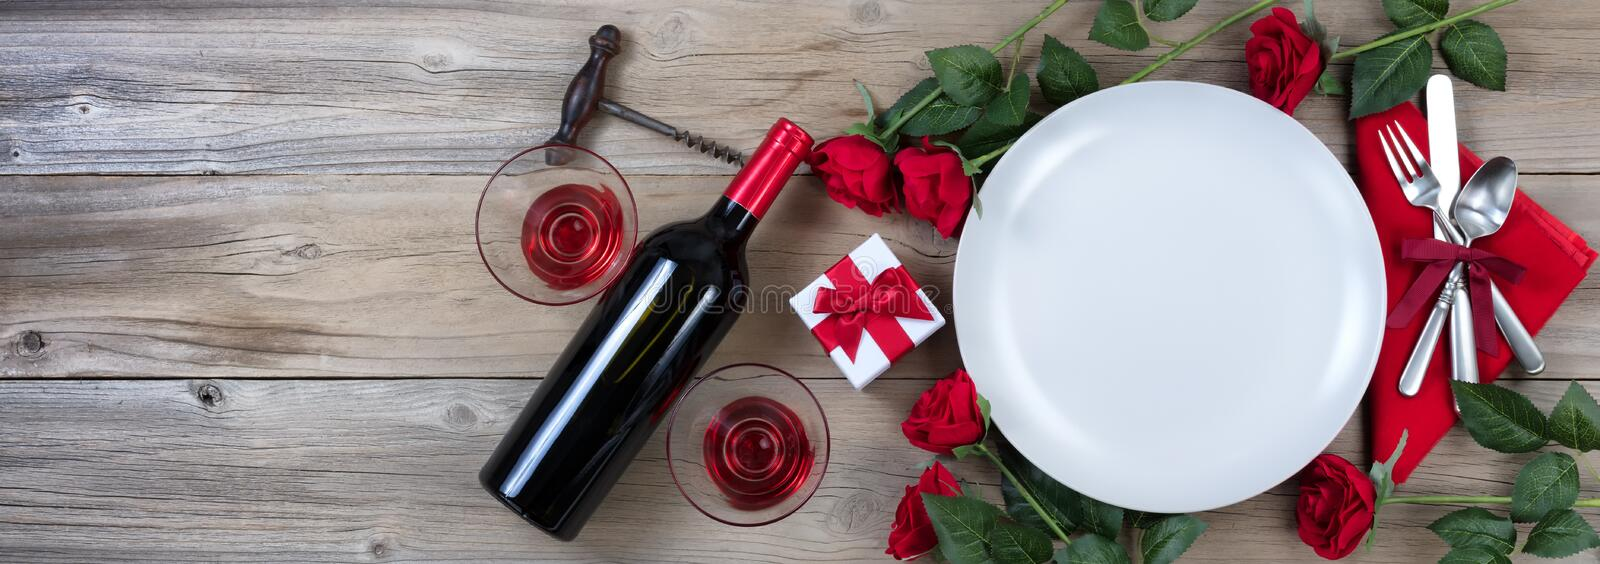 Valentines Dinner with Red Wine on rustic wooden background stock photos